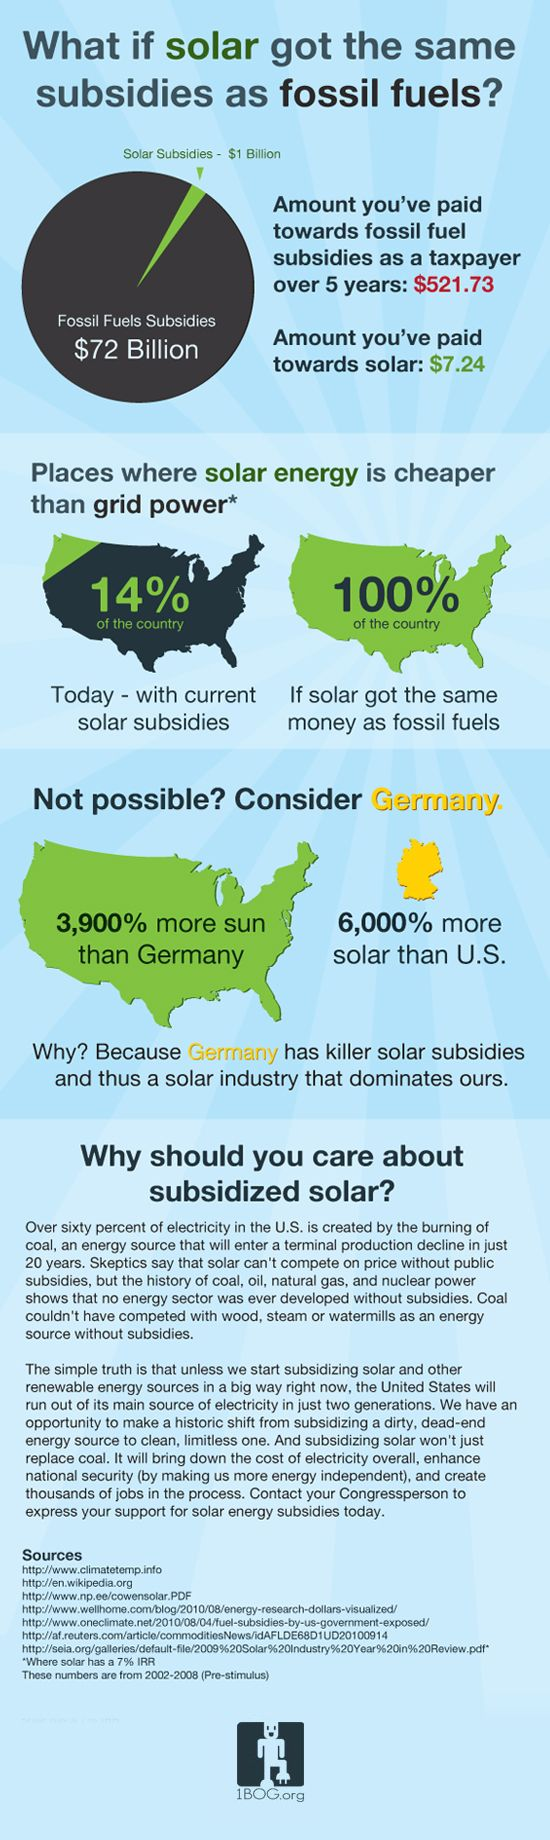 Low cost fossil fuels actually cost quite a bit... $ 72 billion in federal subsidies, not to mention the environmental toll.     Investing in solar energy would cost less now and in the long run.    When will America stop subsidizing pollution?